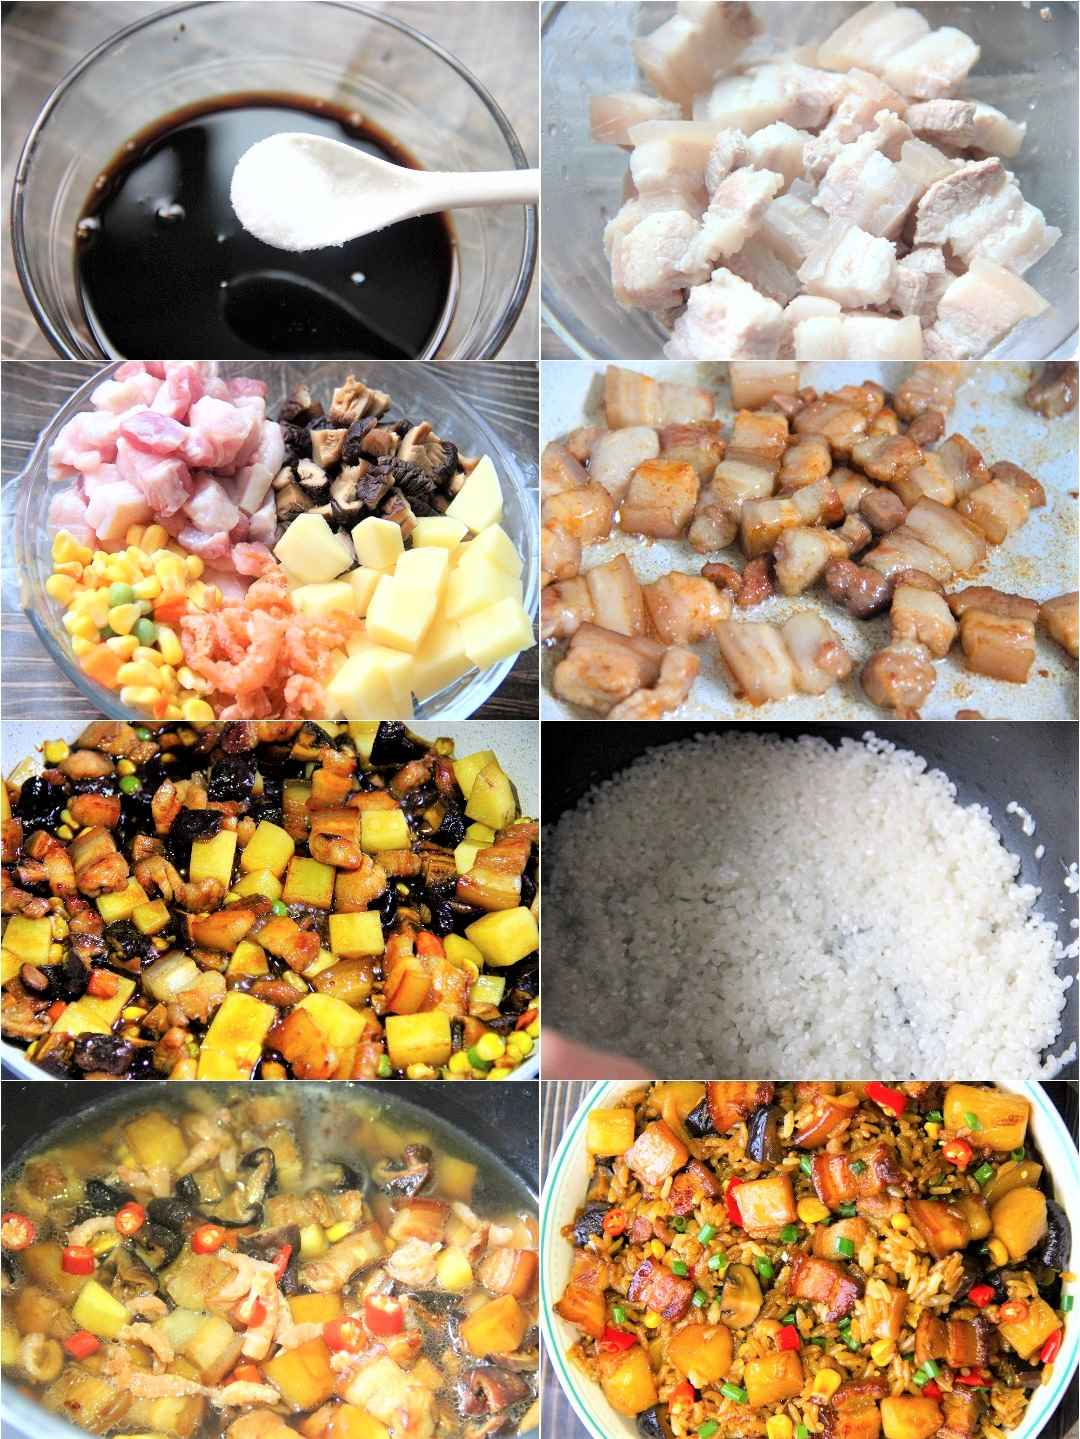 Stew rice with pork and potatoes recipe with pictures step by step